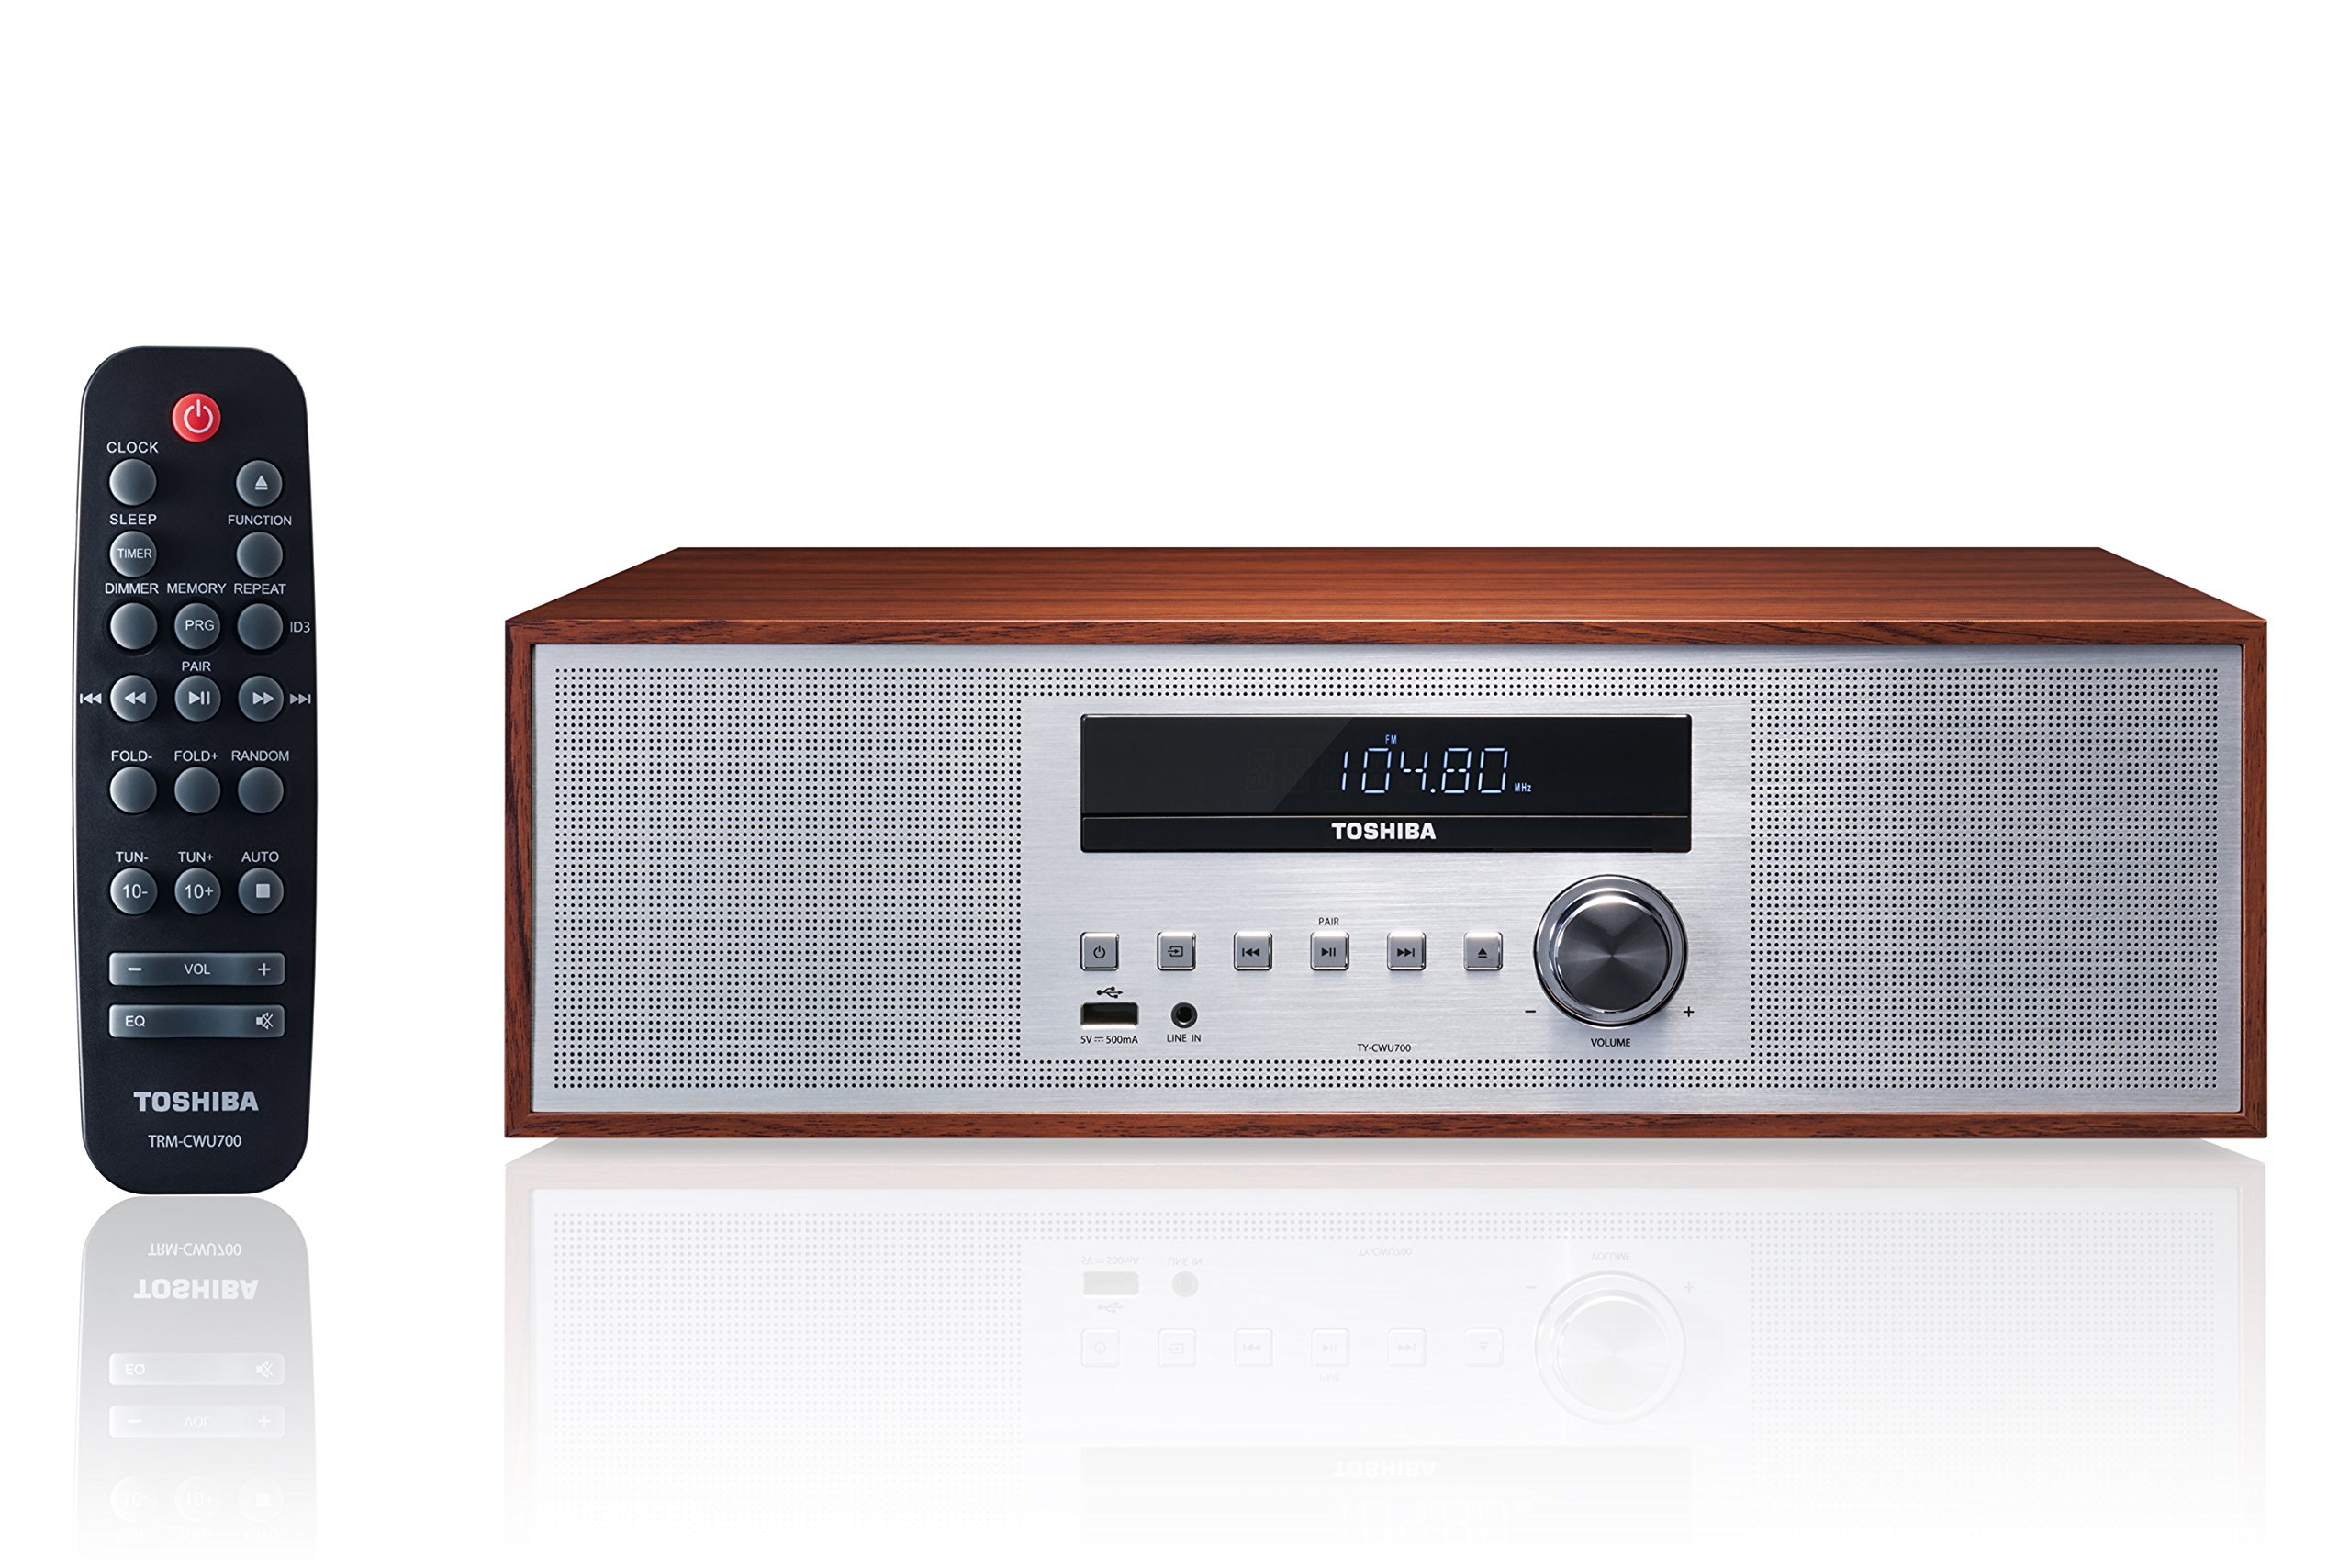 Toshiba TY-CWU700 Vintage Style Retro Look Micro Component Wireless Bluetooth Audio Streaming & CD Player Wood Speaker System + Remote, USB Port for MP3 Playback, FM Stereo Digital Tuner, AUX Input by Toshiba